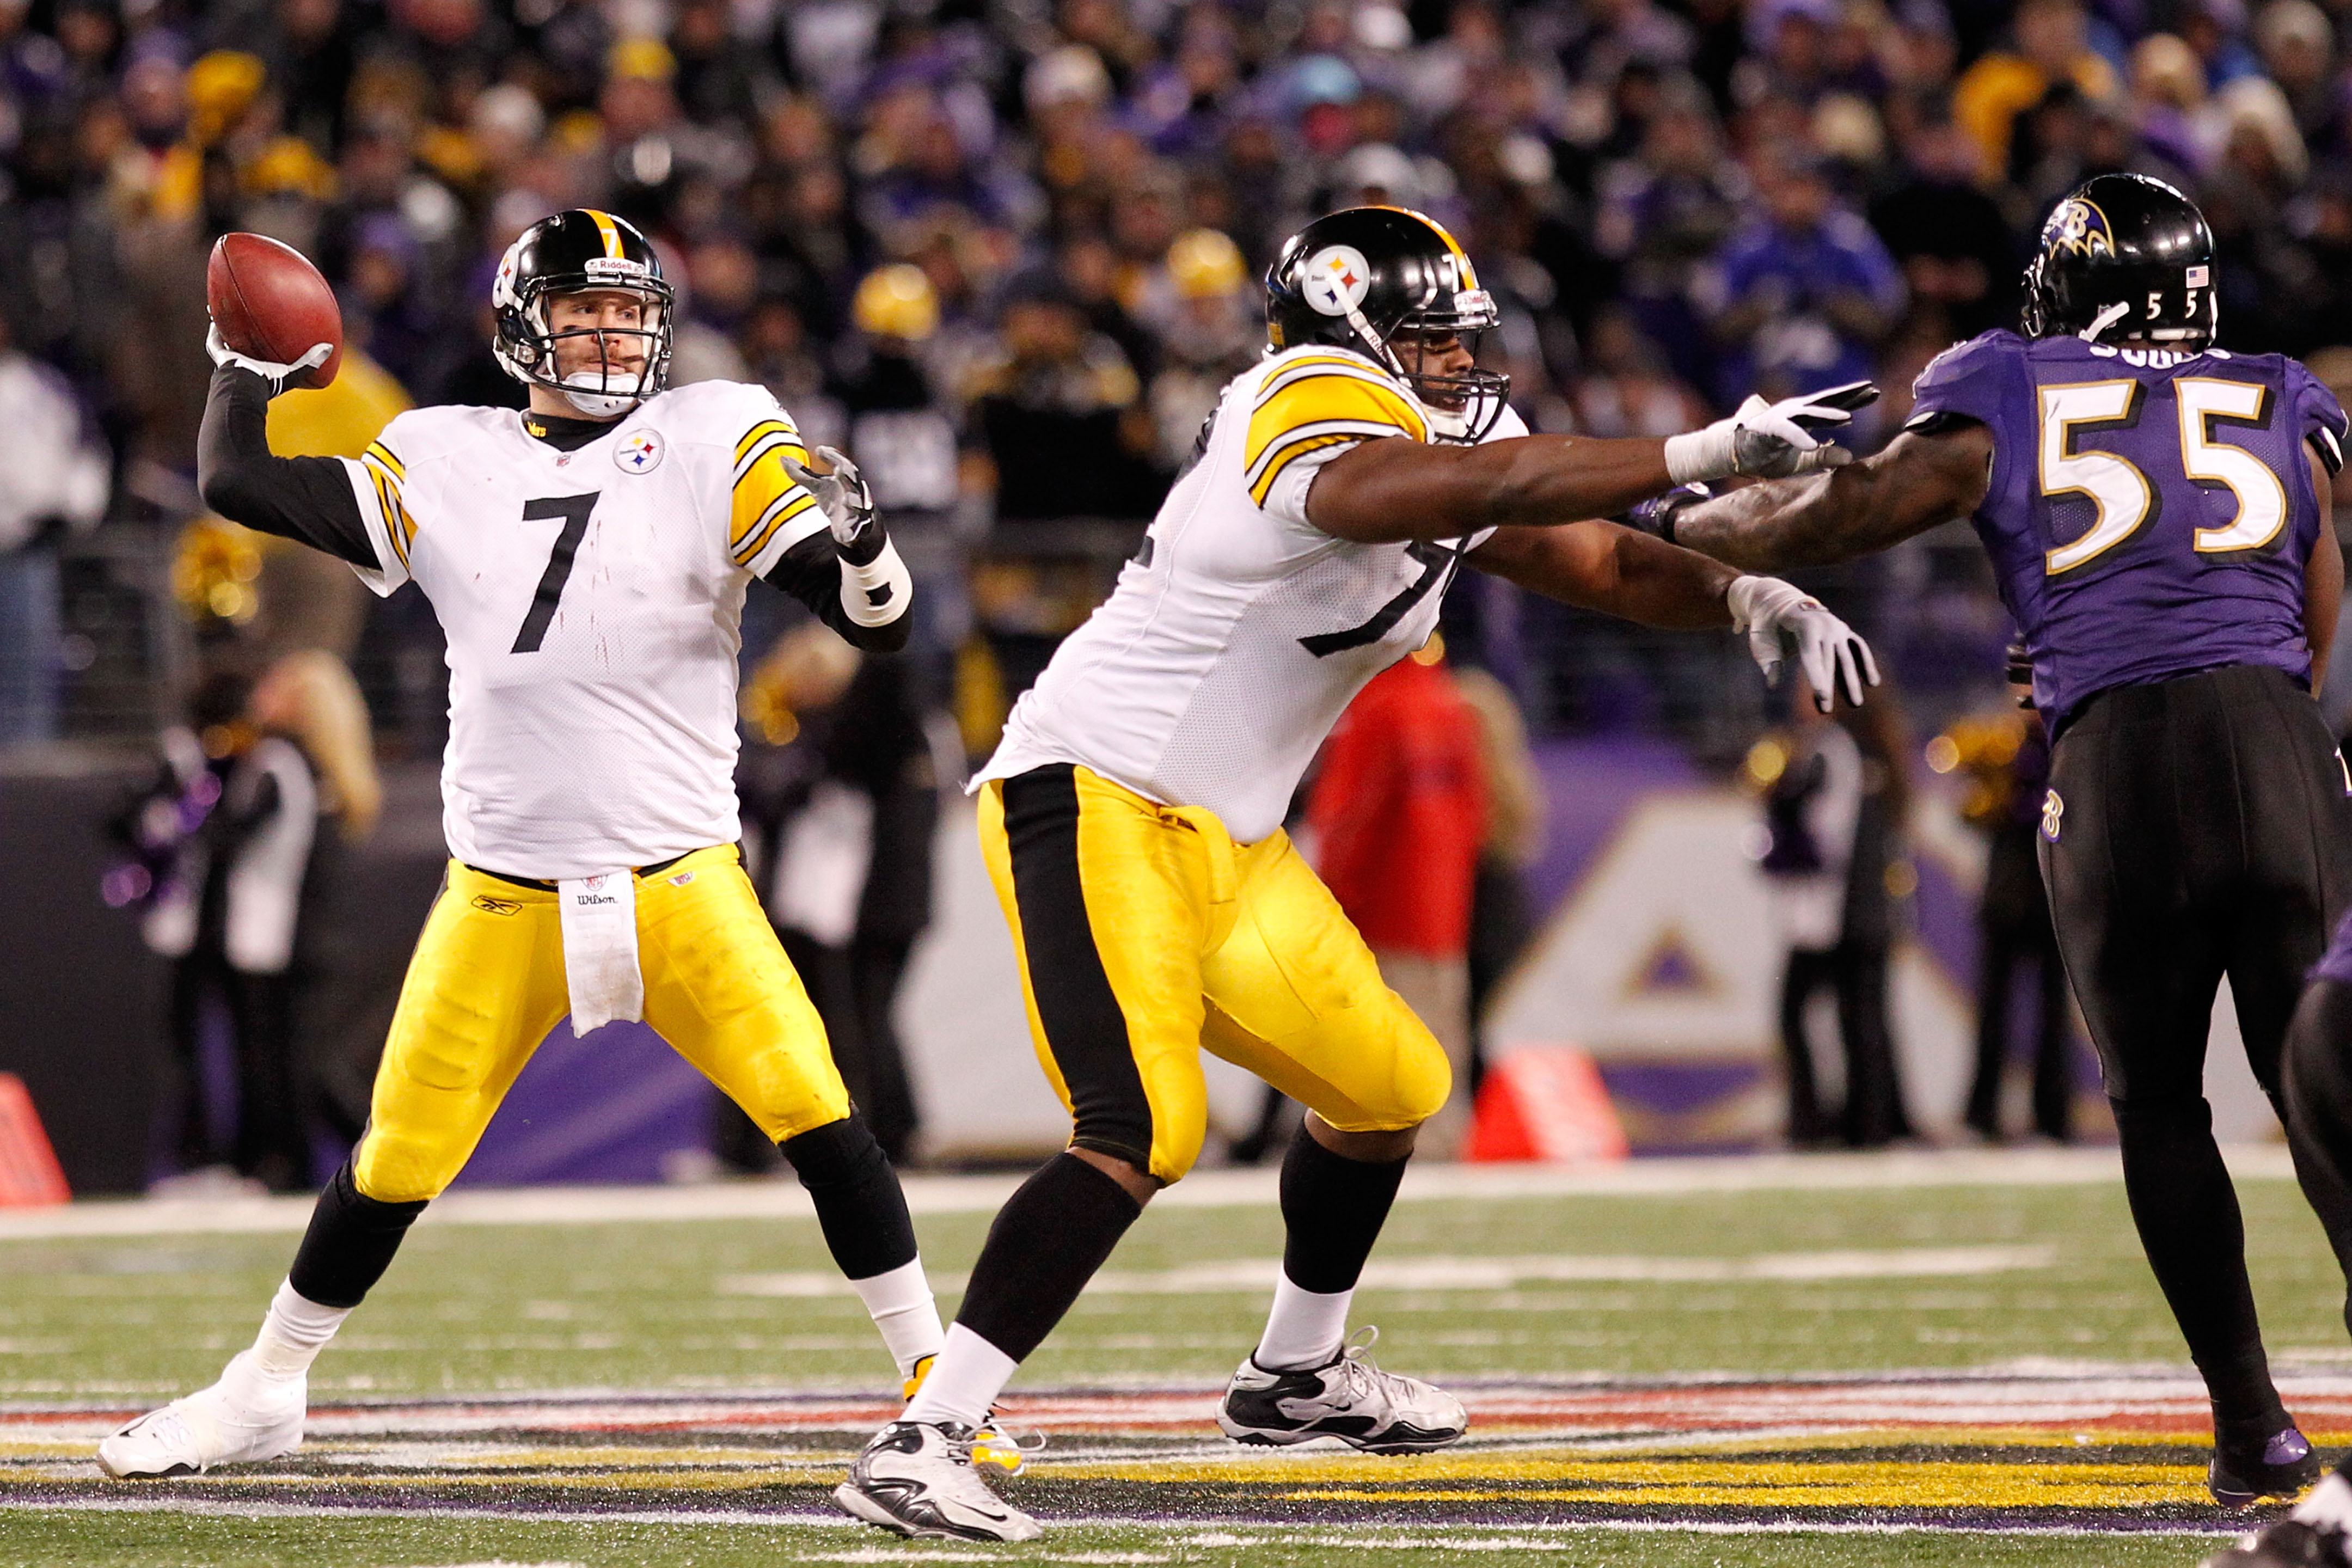 BALTIMORE, MD - DECEMBER 05:  Quarterback Ben Roethlisberger #7 of the Pittsburgh Steelers looks to pass against the Baltimore Ravens during the third quarter of the game at M&T Bank Stadium on December 5, 2010 in Baltimore, Maryland.  (Photo by Geoff Bur